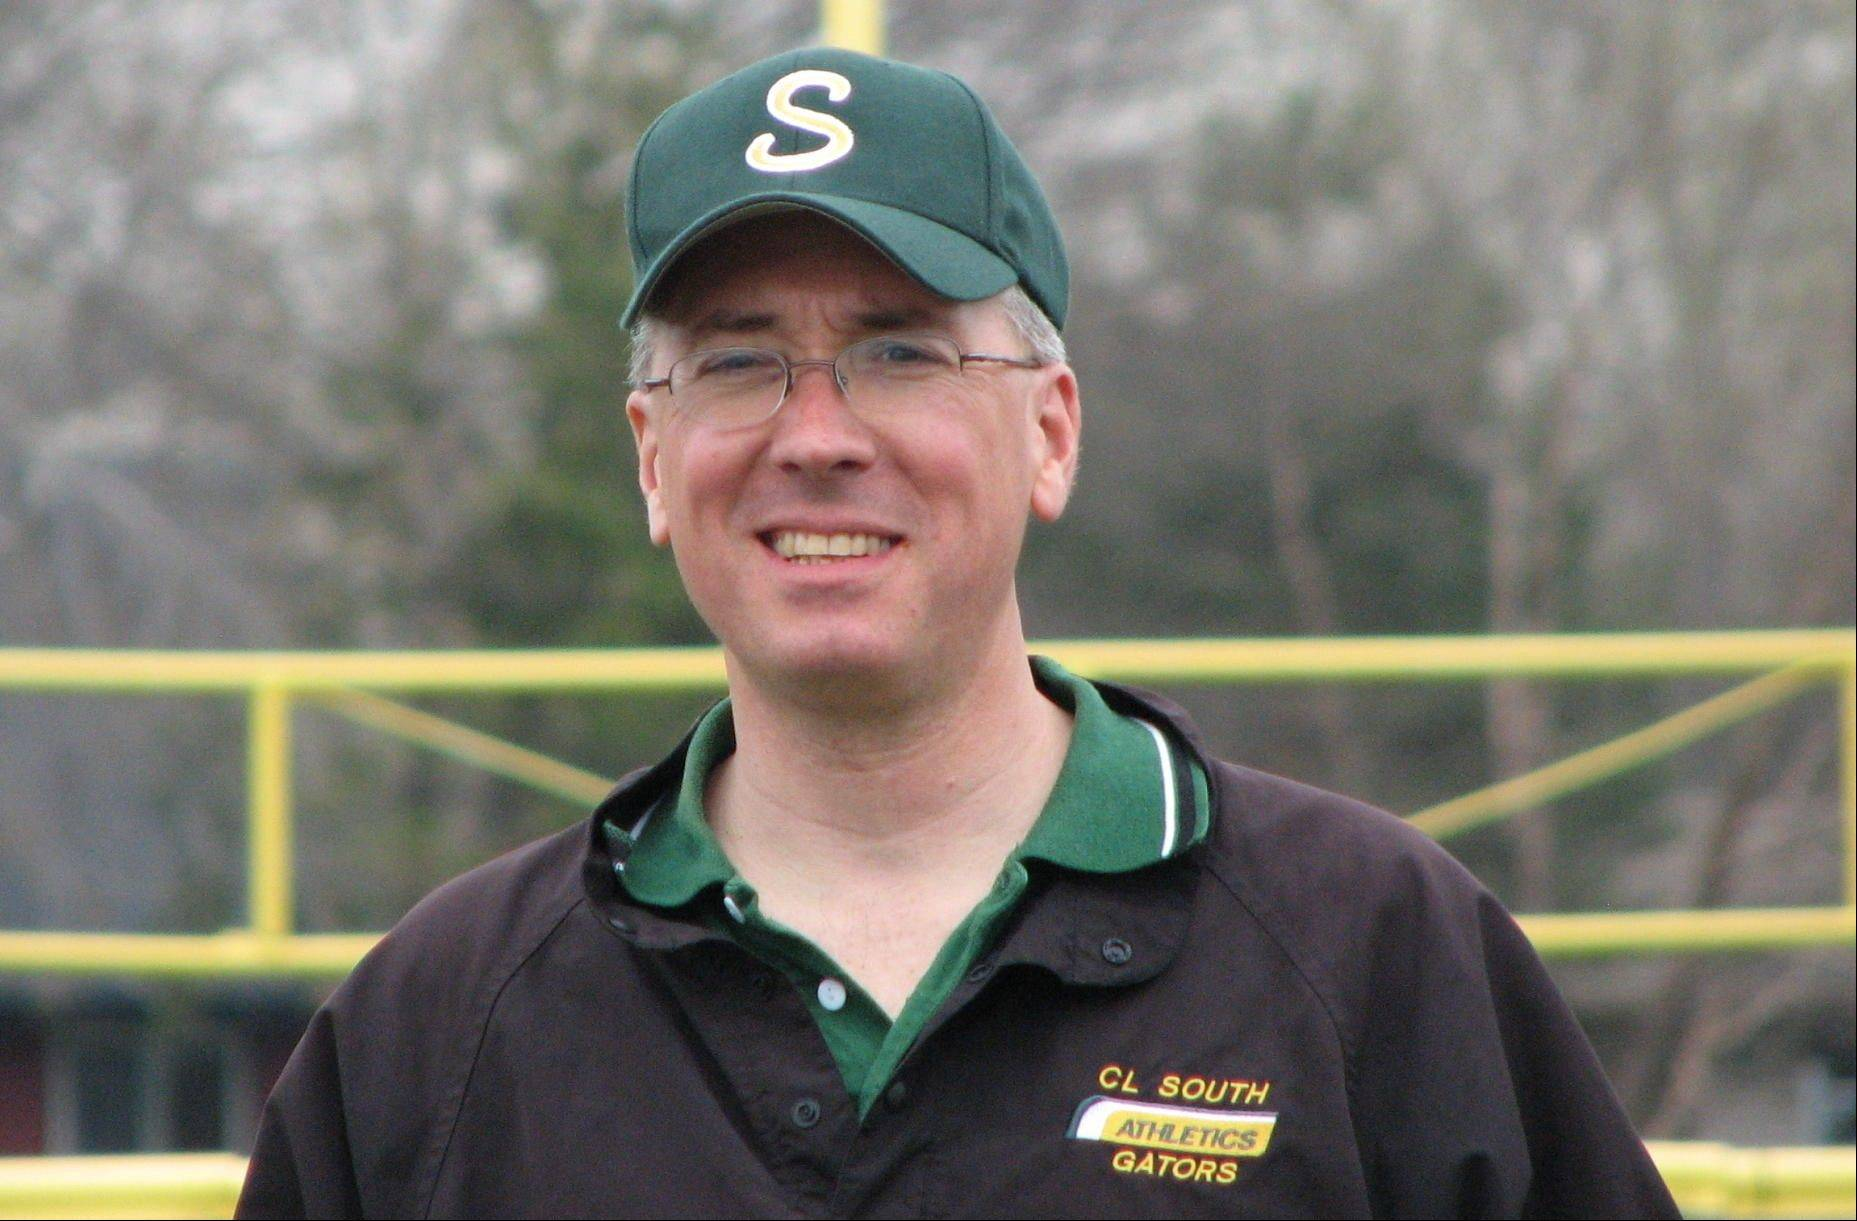 Crystal Lake South assistant softball coach Mark Hardie is out of action for the season while he recovers from compartment syndrome.